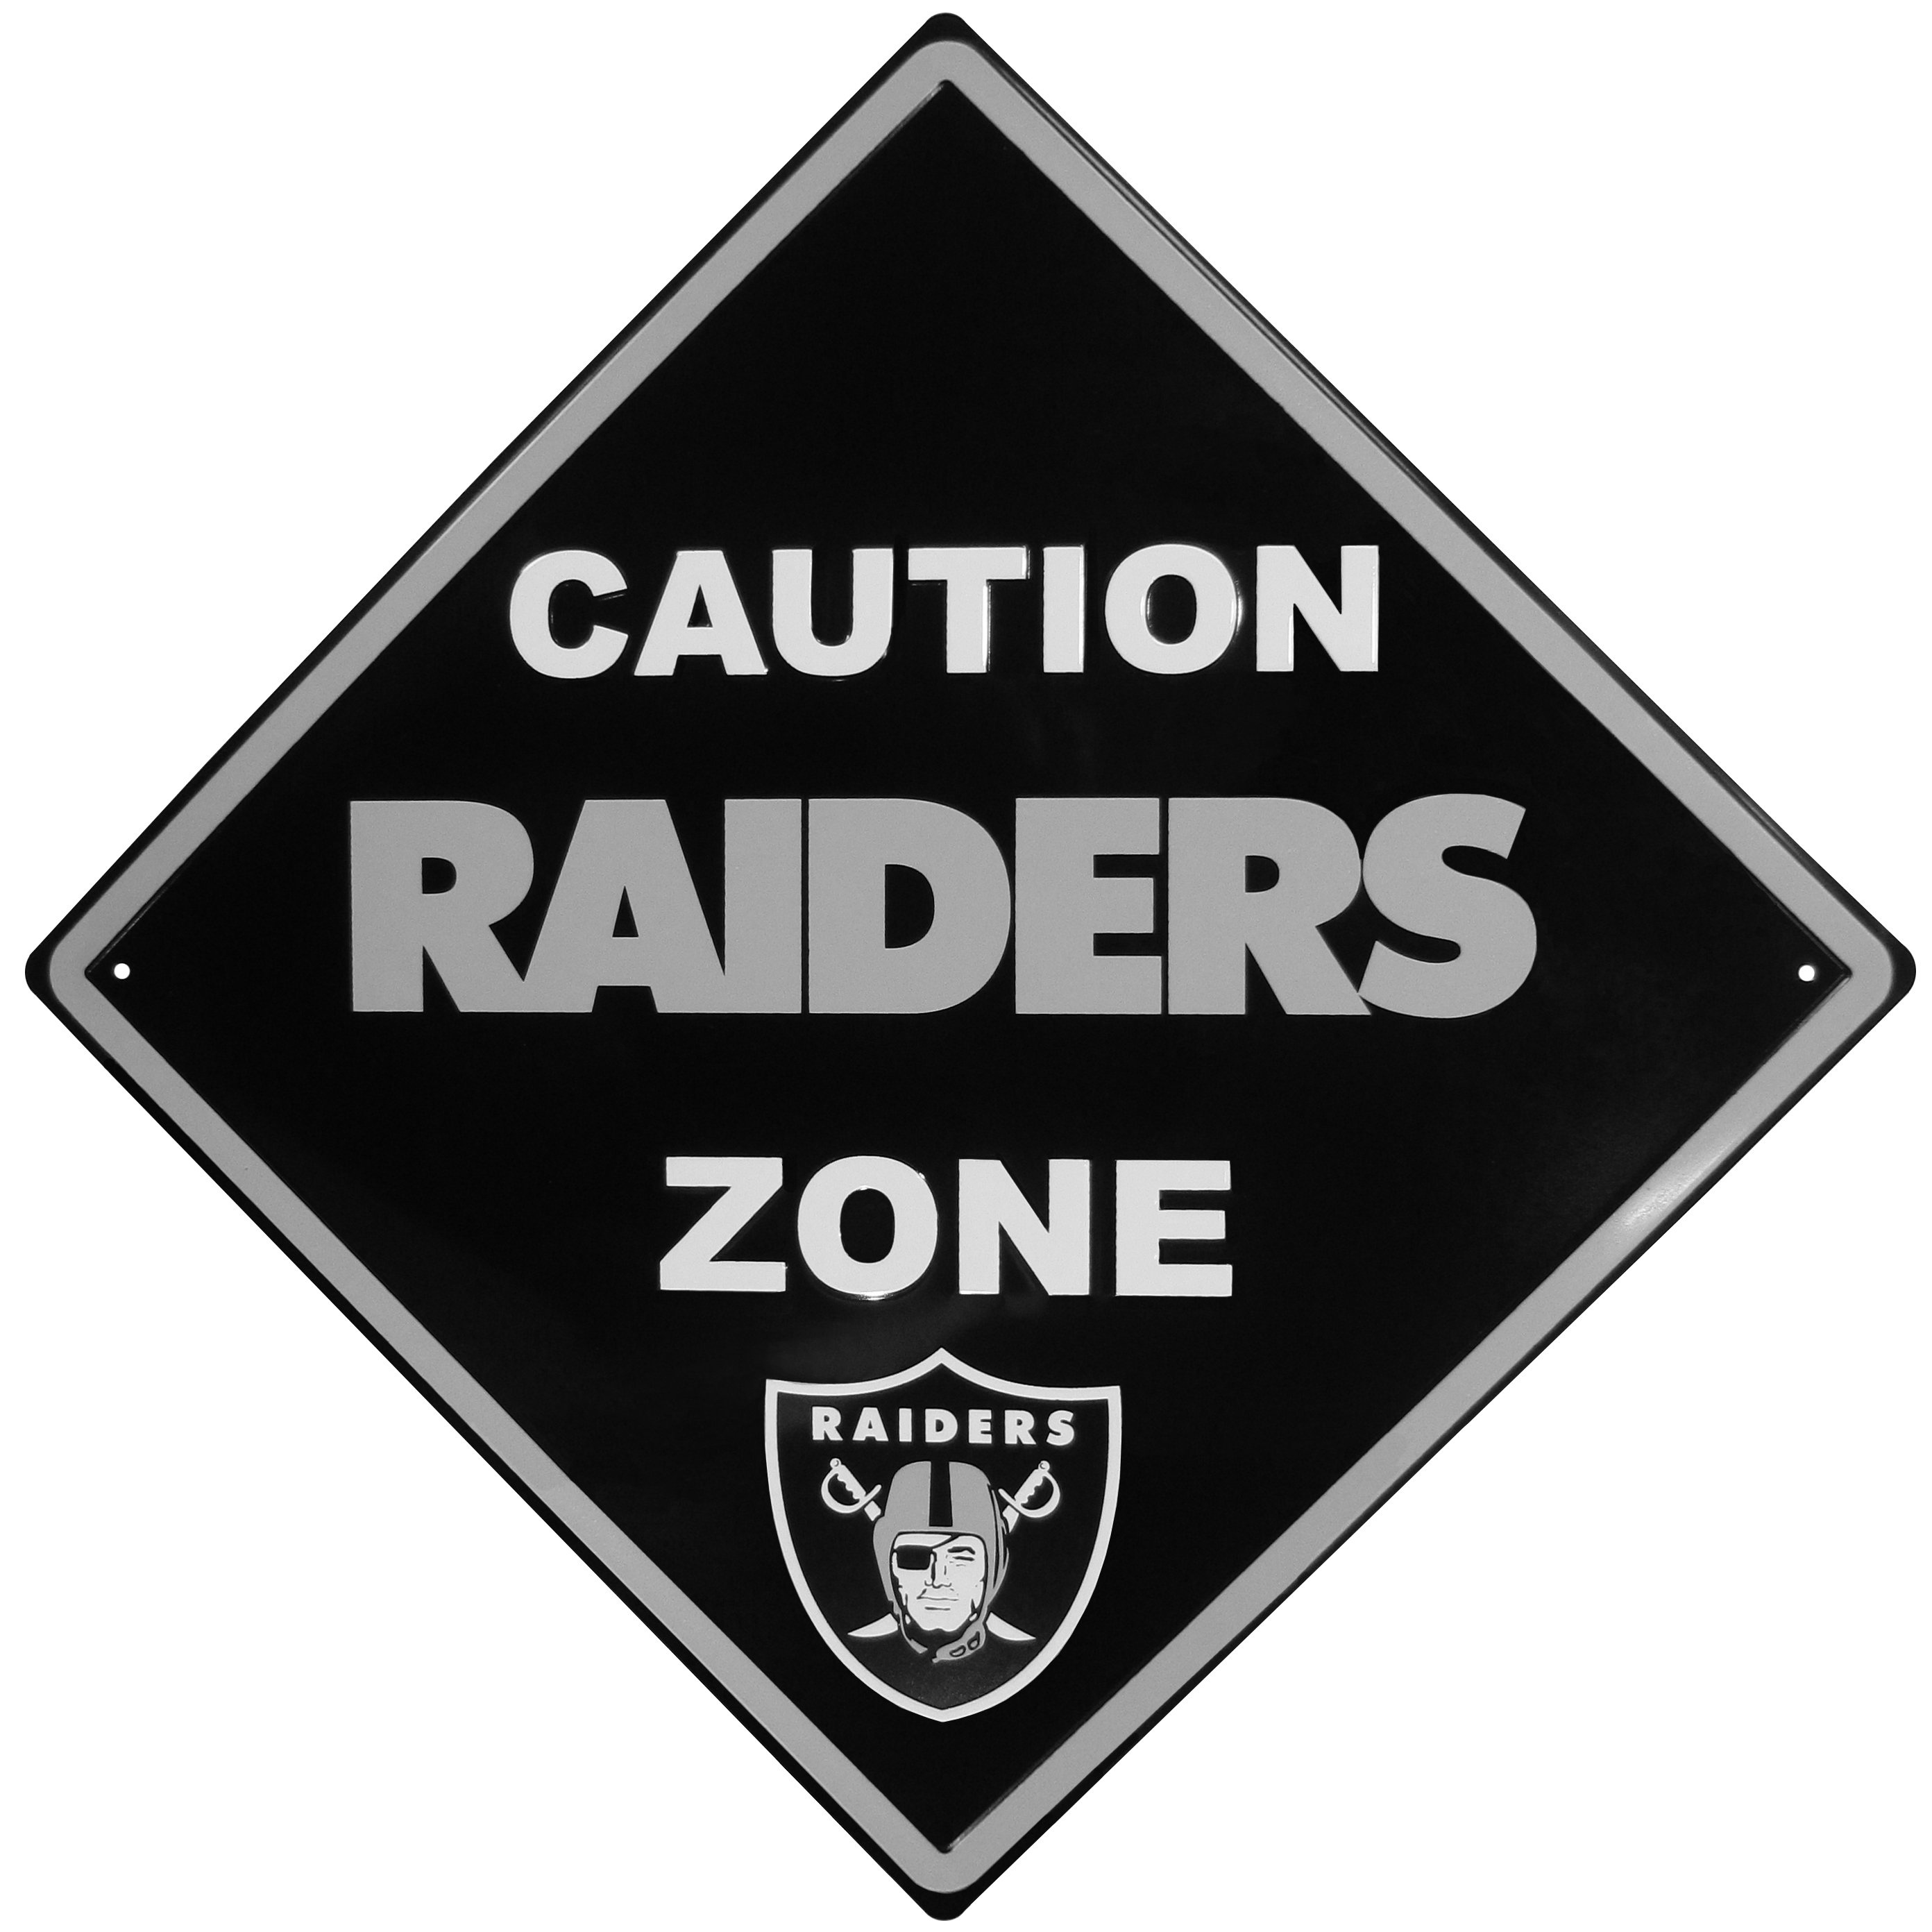 Oakland Raiders Caution Wall Sign Plaque - Let everyone know that they are entering Oakland Raiders territory! Our 14 inch caution wall plaques are a the perfect way to convert any room into a fan cave! The light-weight aluminum signs mount easily to any wall and are perfect for the home or office.